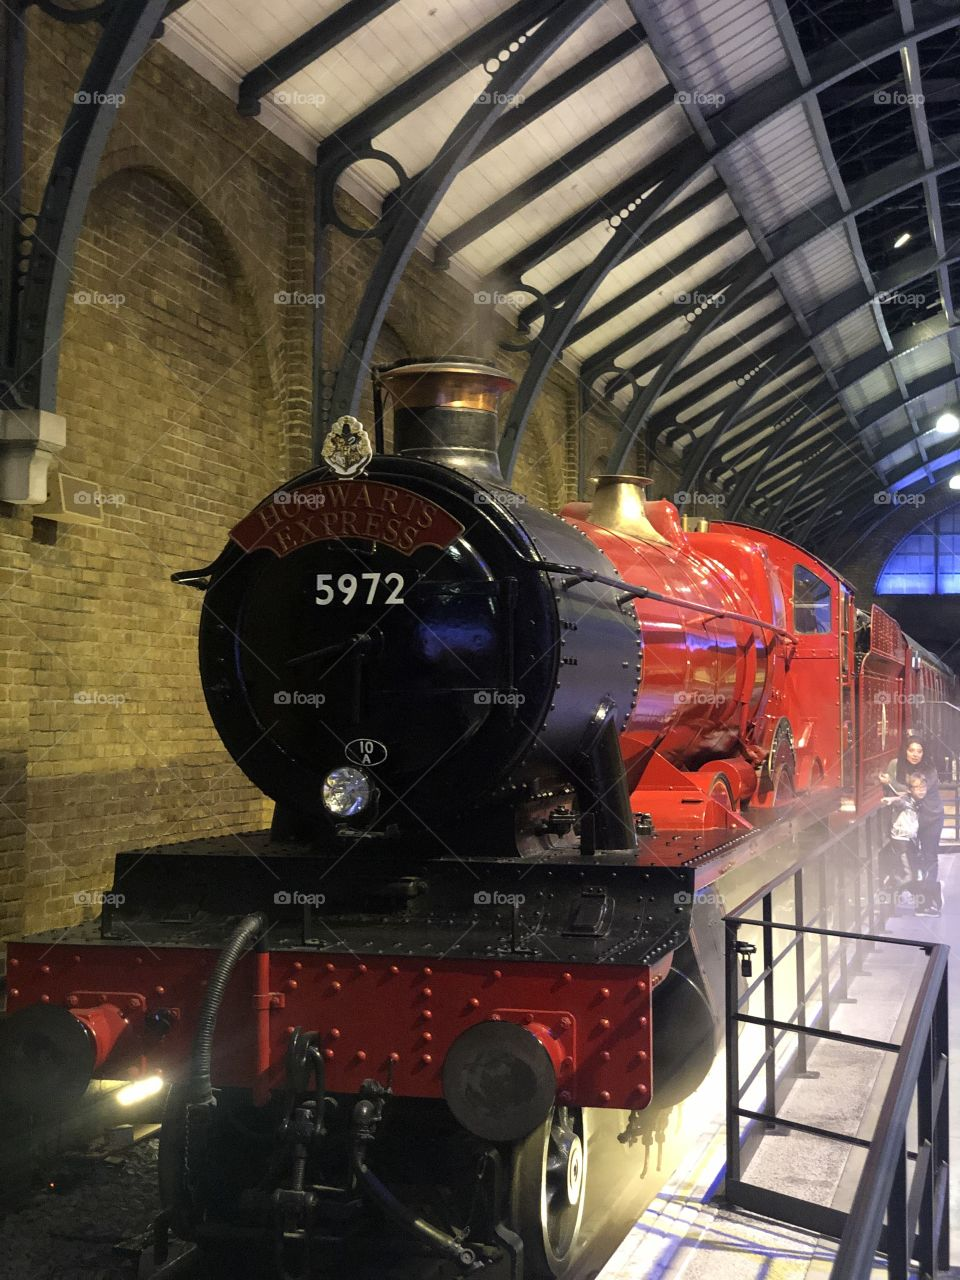 The Hogwarts express train used in the movies